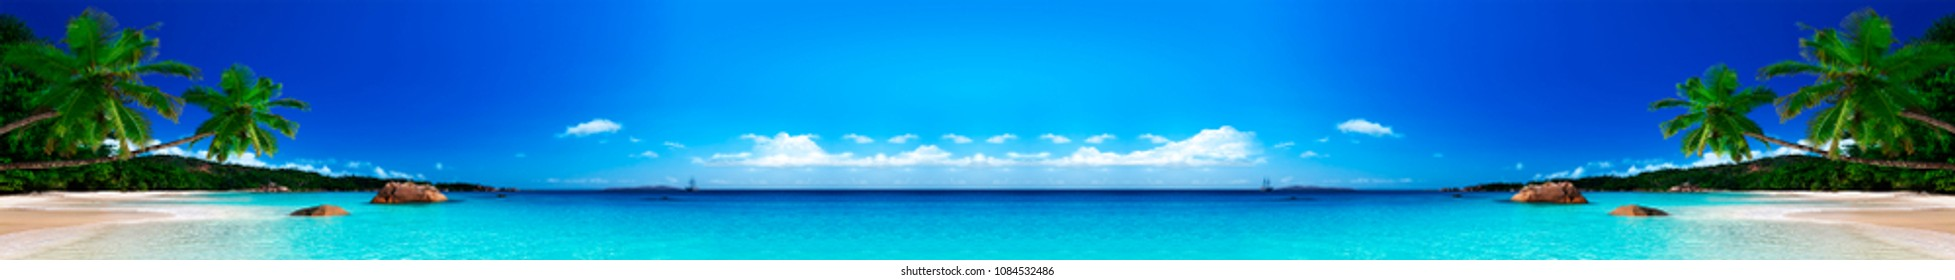 Panoramic landscape of the sea and the beach with small ships in the background.